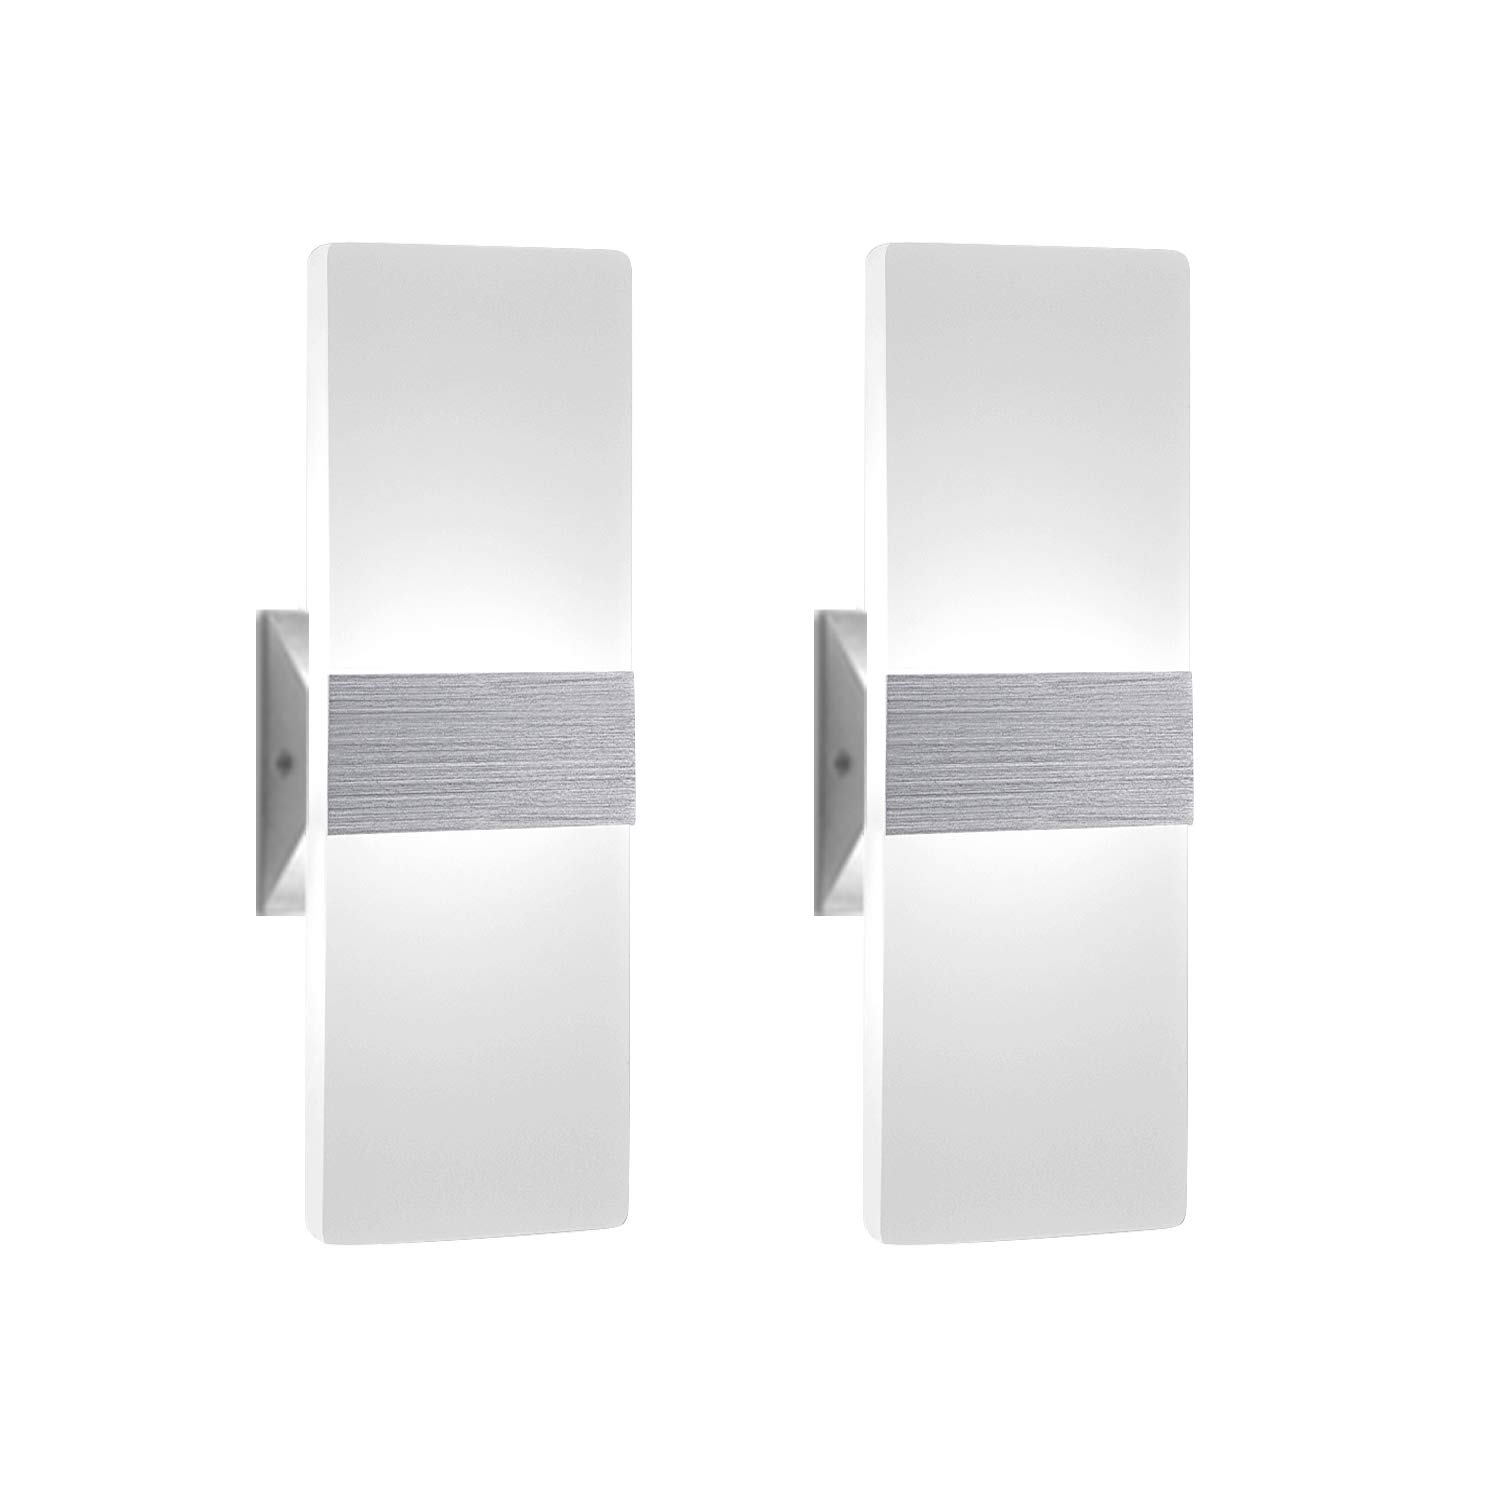 Modern Wall Sconce 12W, Set of 2 LED Wall Lamp Cool White, Acrylic Material Wall Mounted Wall Lights by ChangM